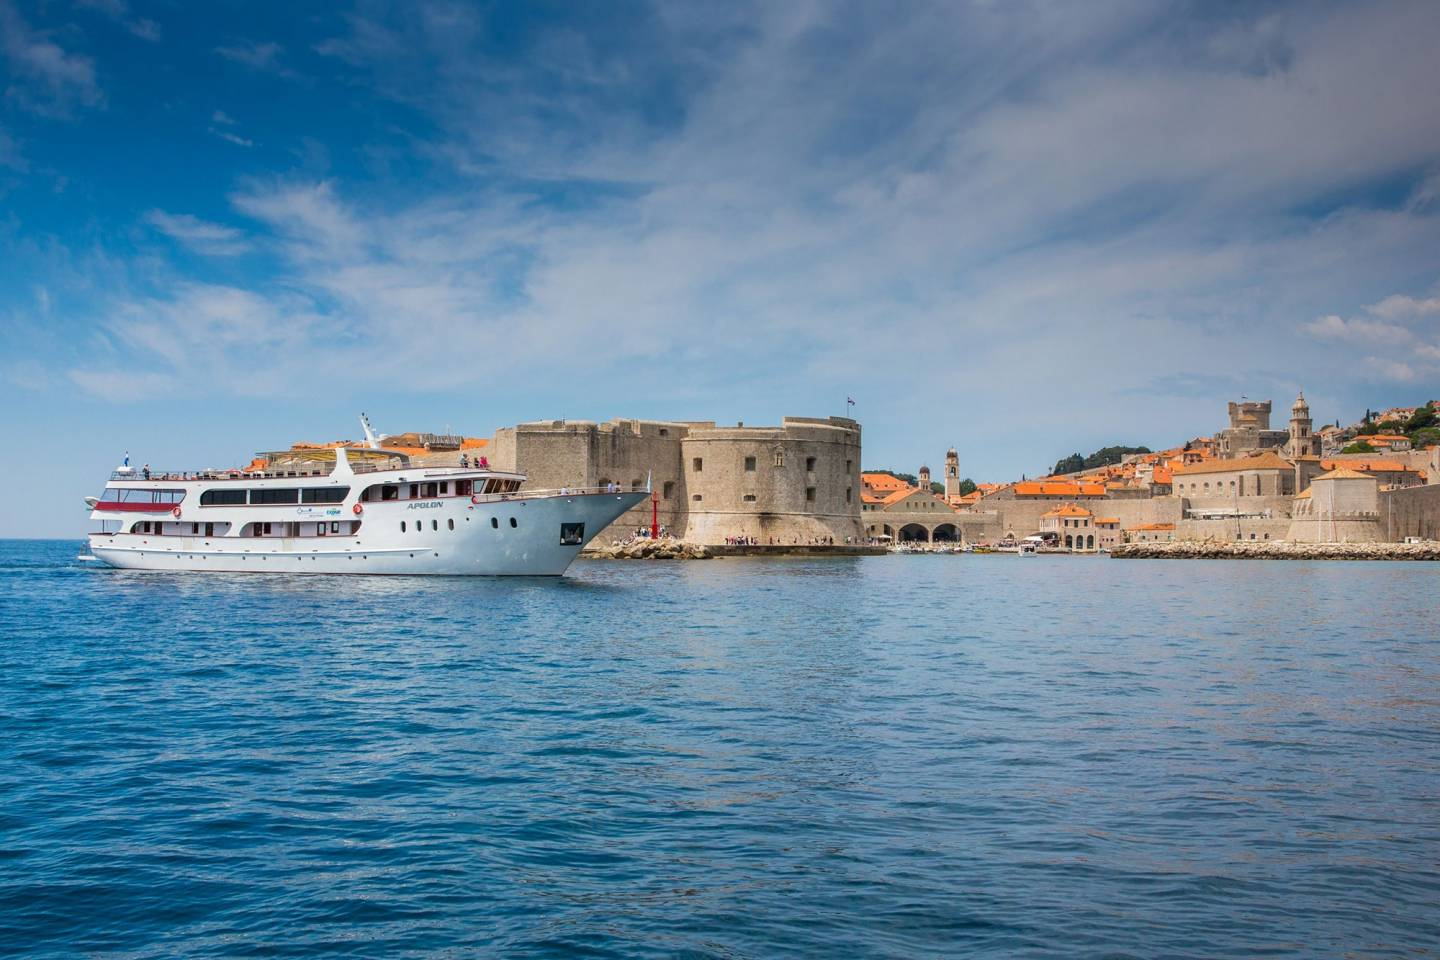 Cruise Kroatië via Expair Tours